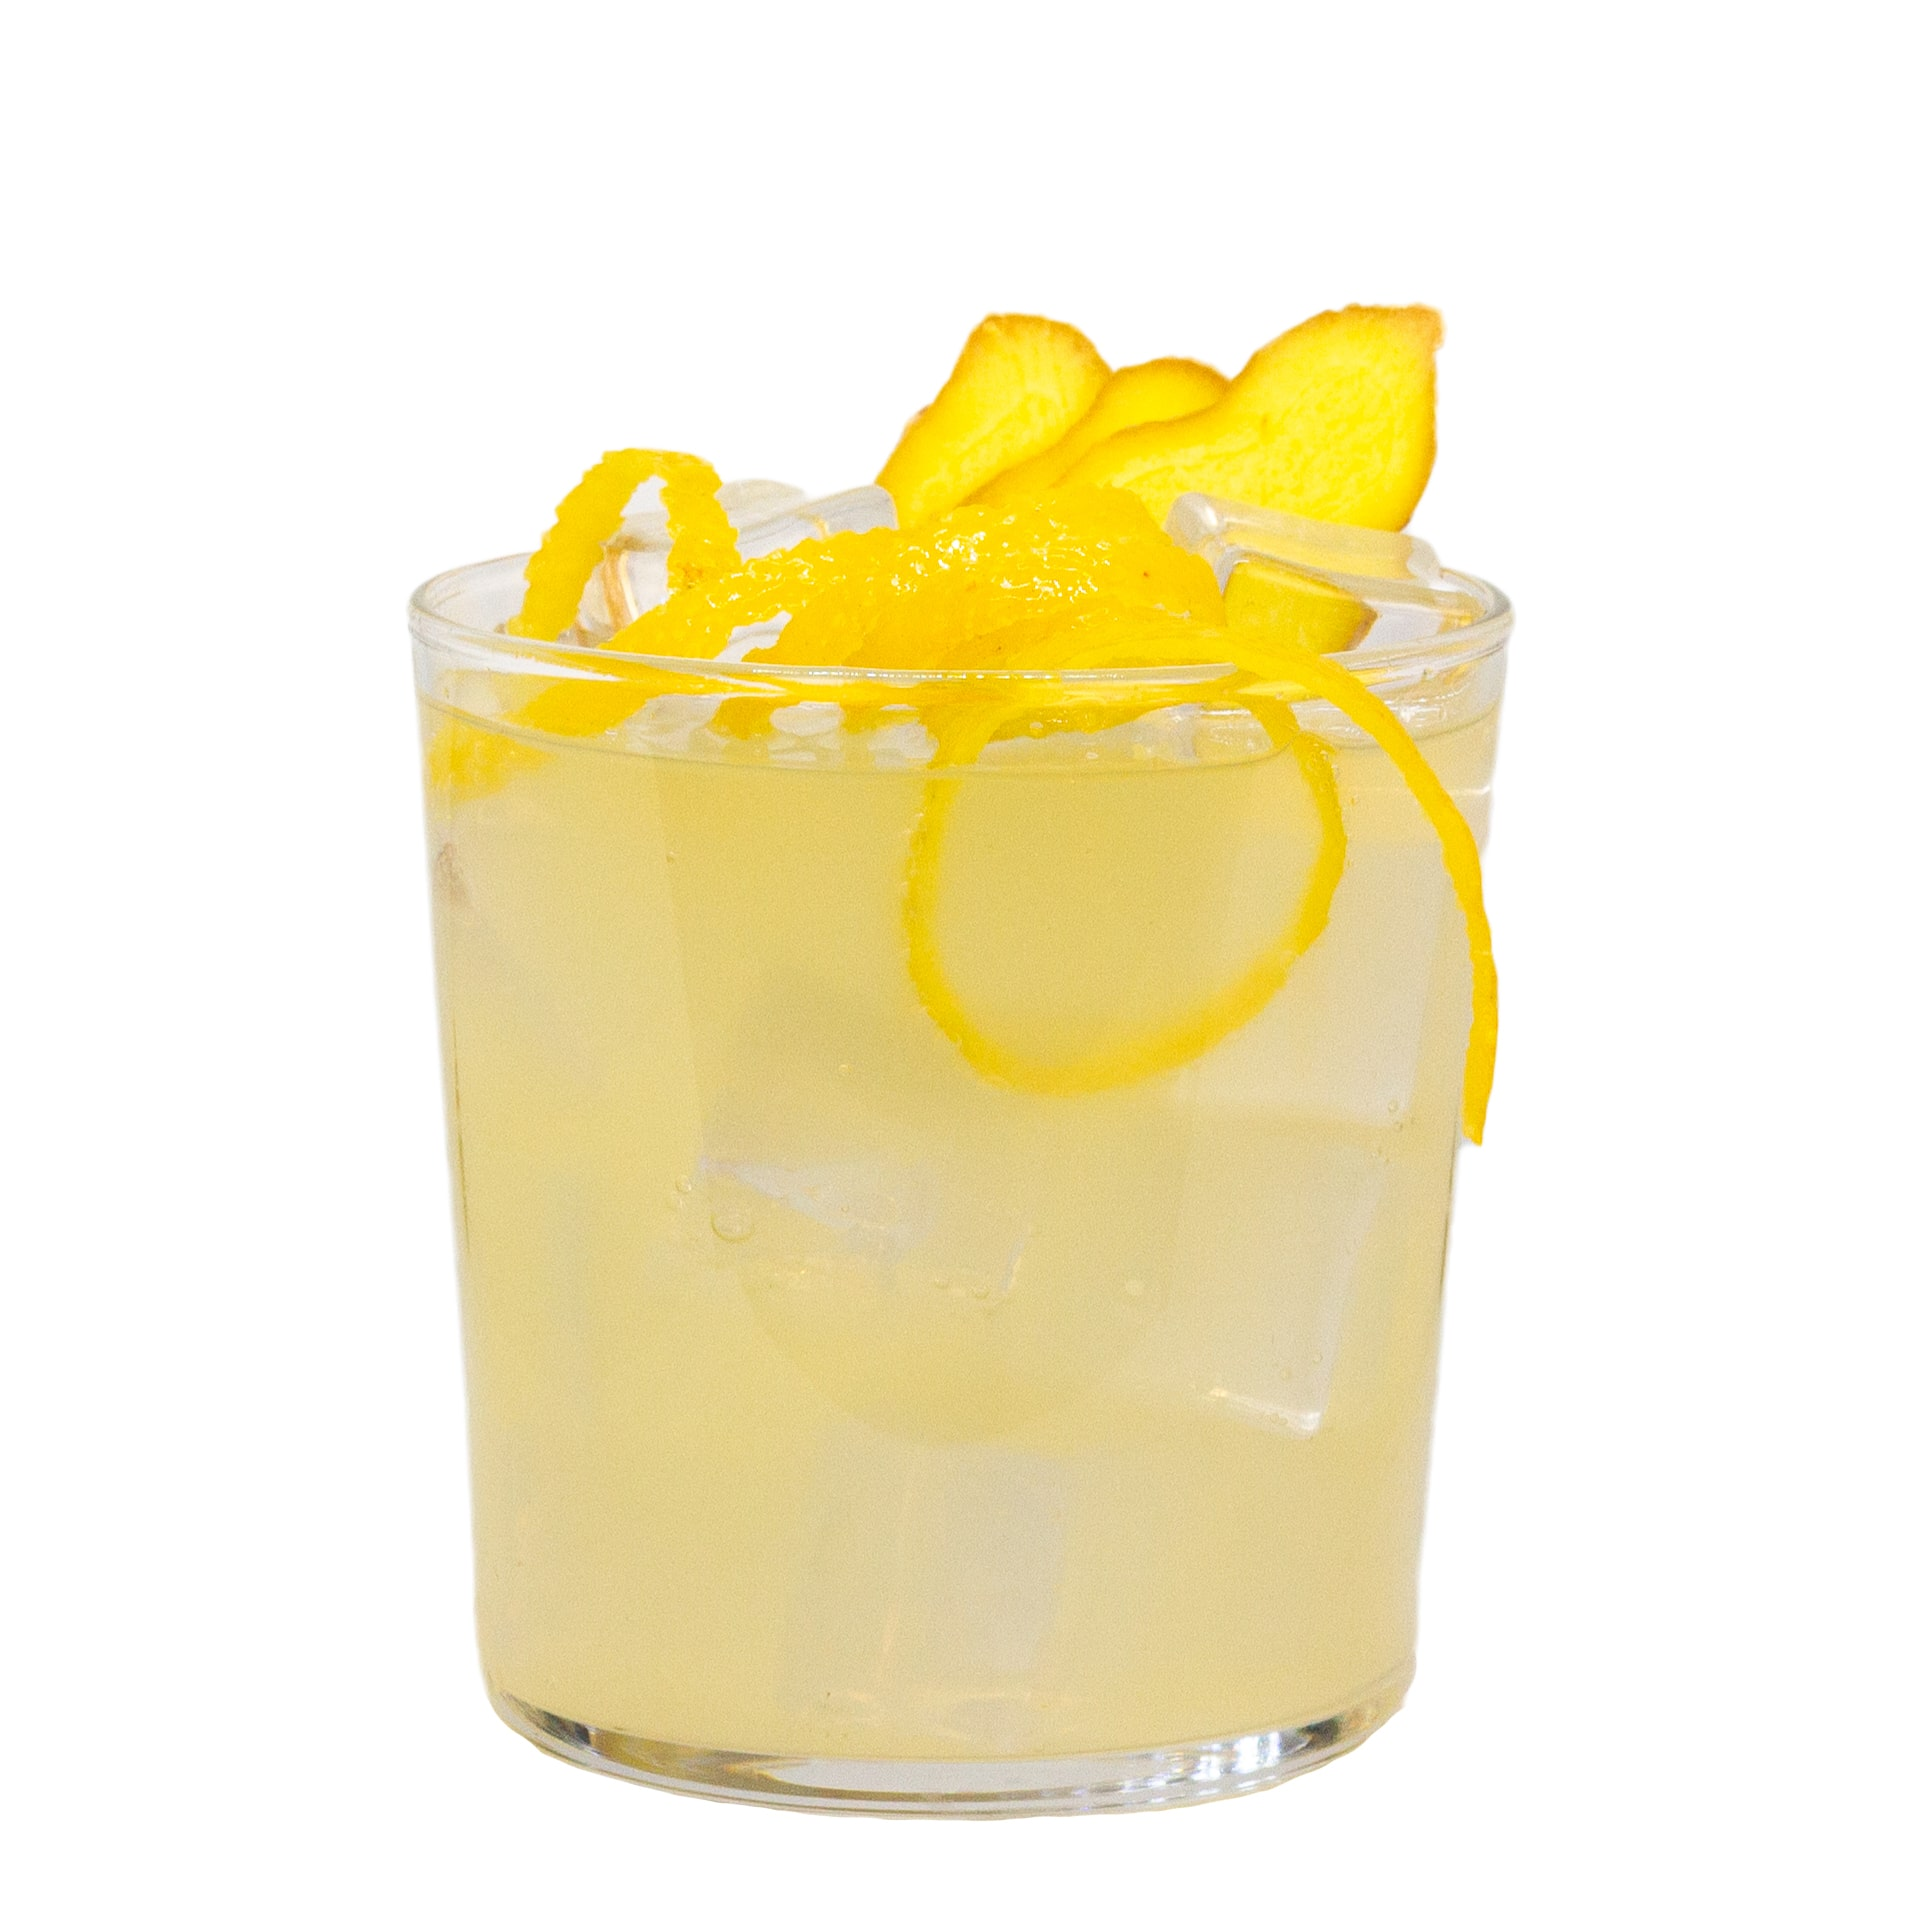 LION's Lemonade mit LION's Vodka und Eizbach Zitrone